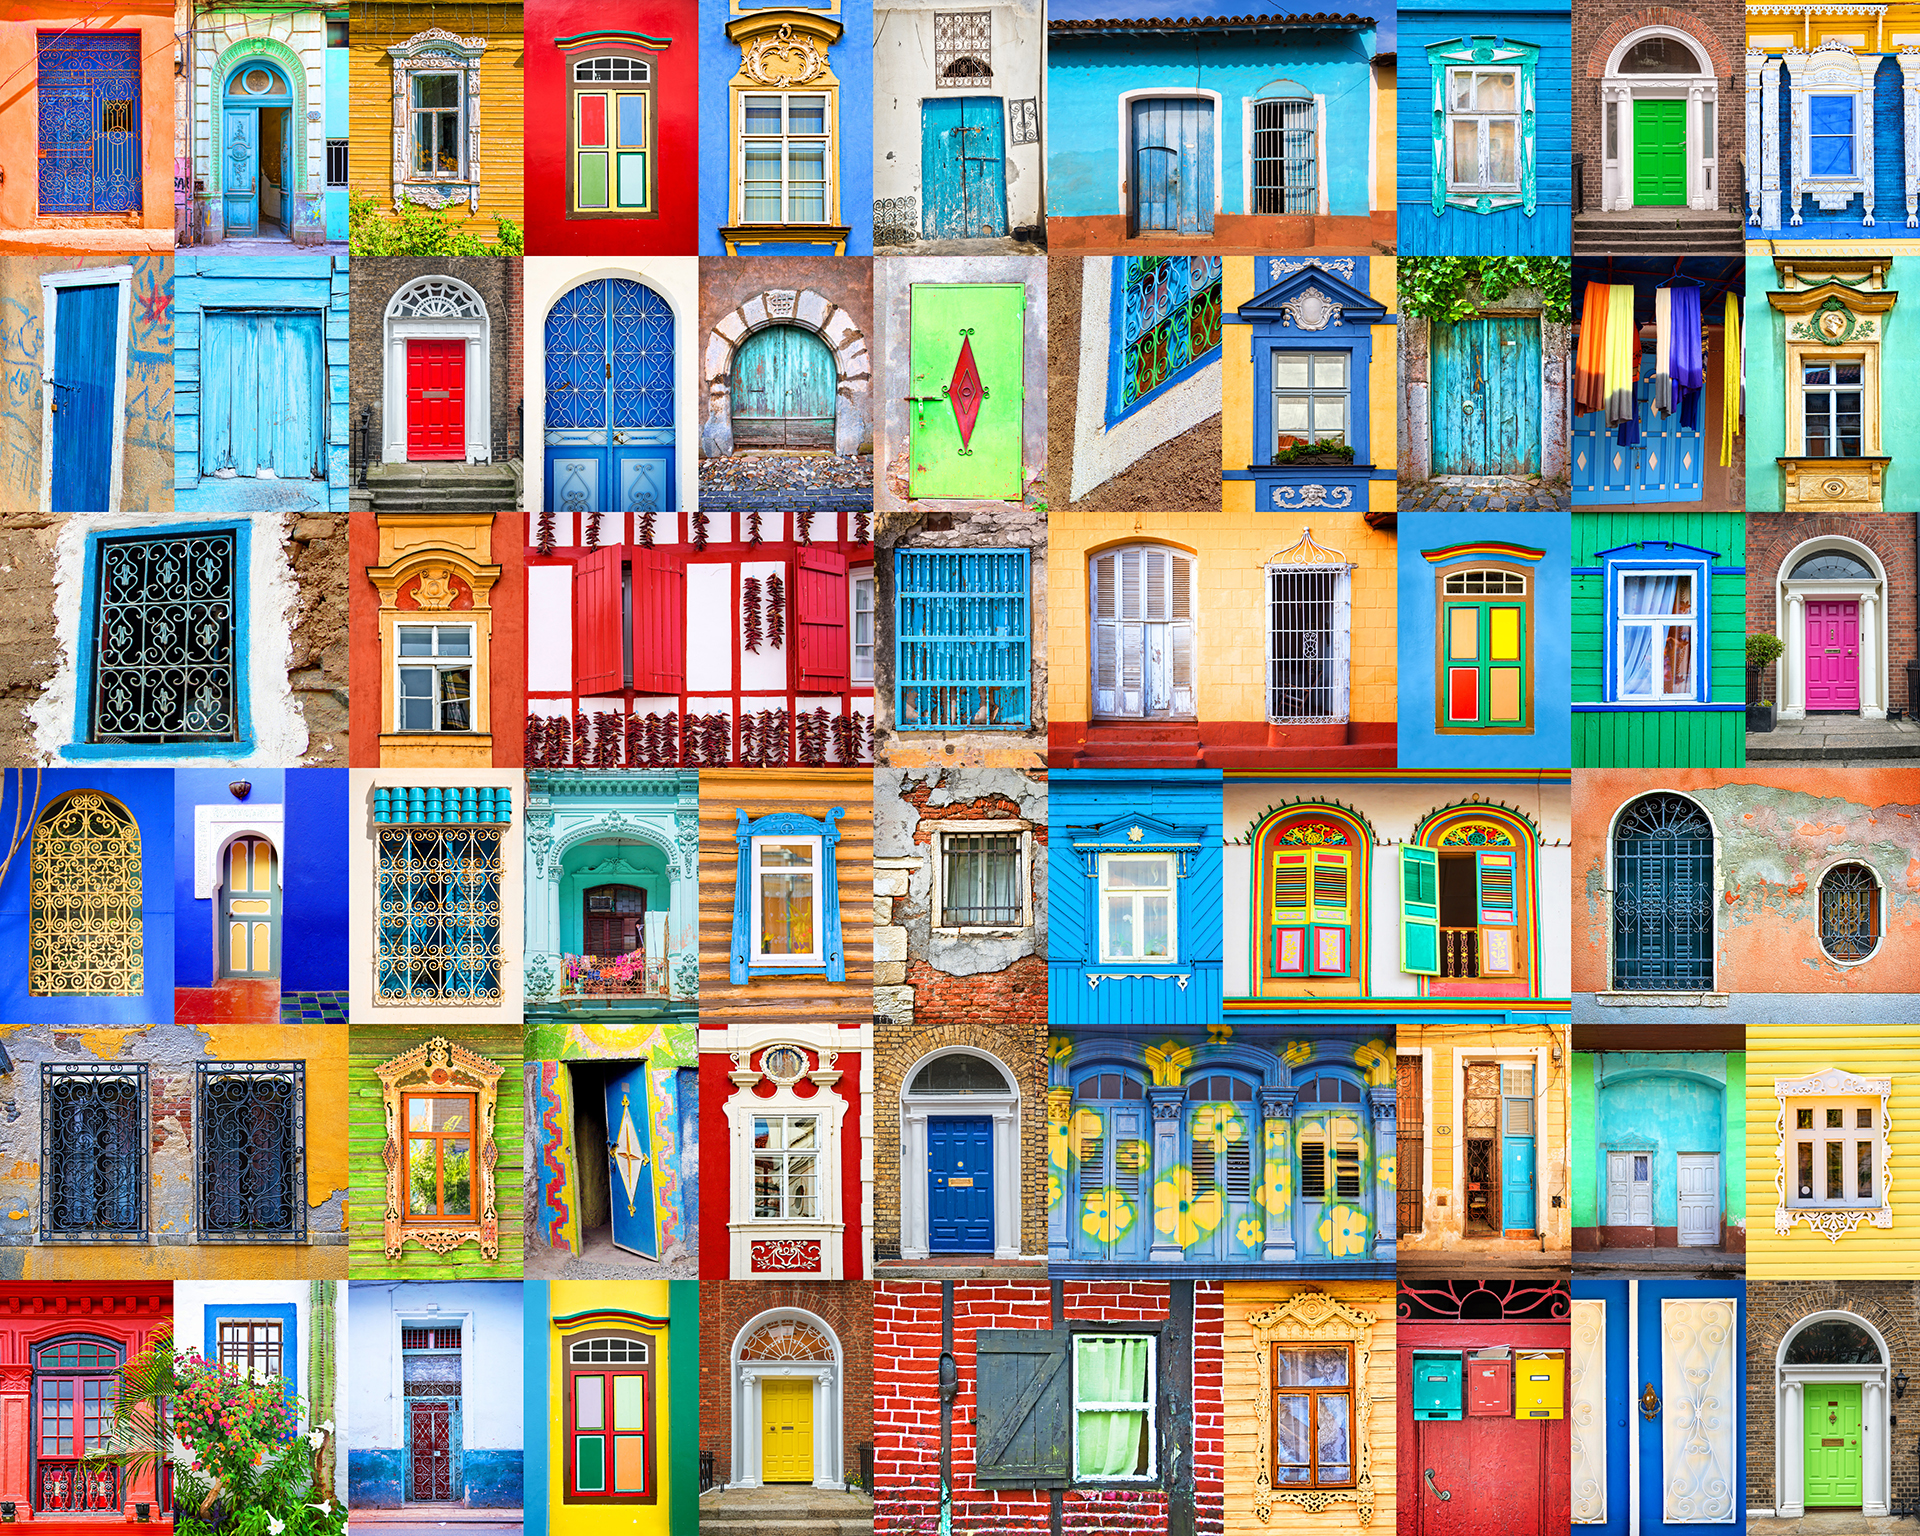 colorful doorways of the world